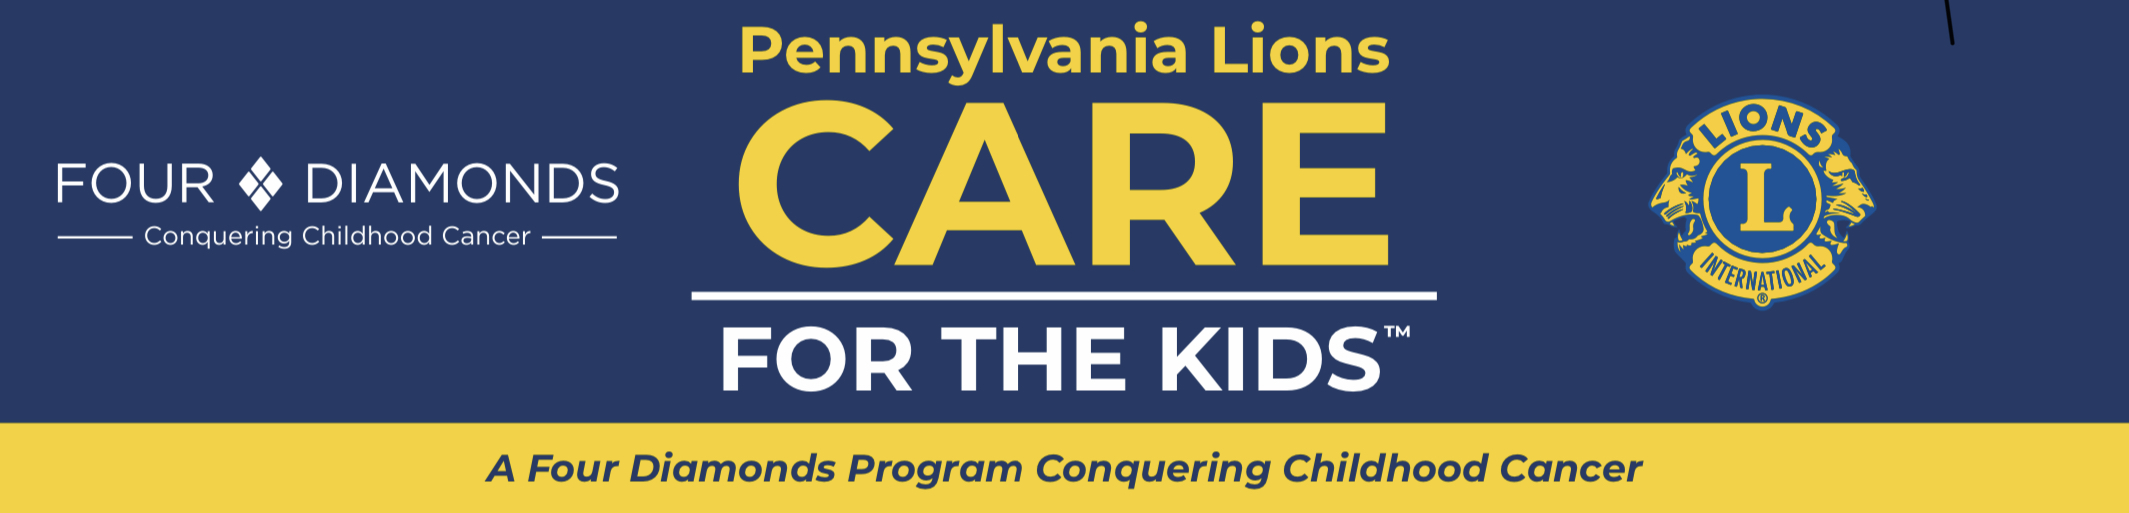 PA Lions Give from Home FTK Challenge